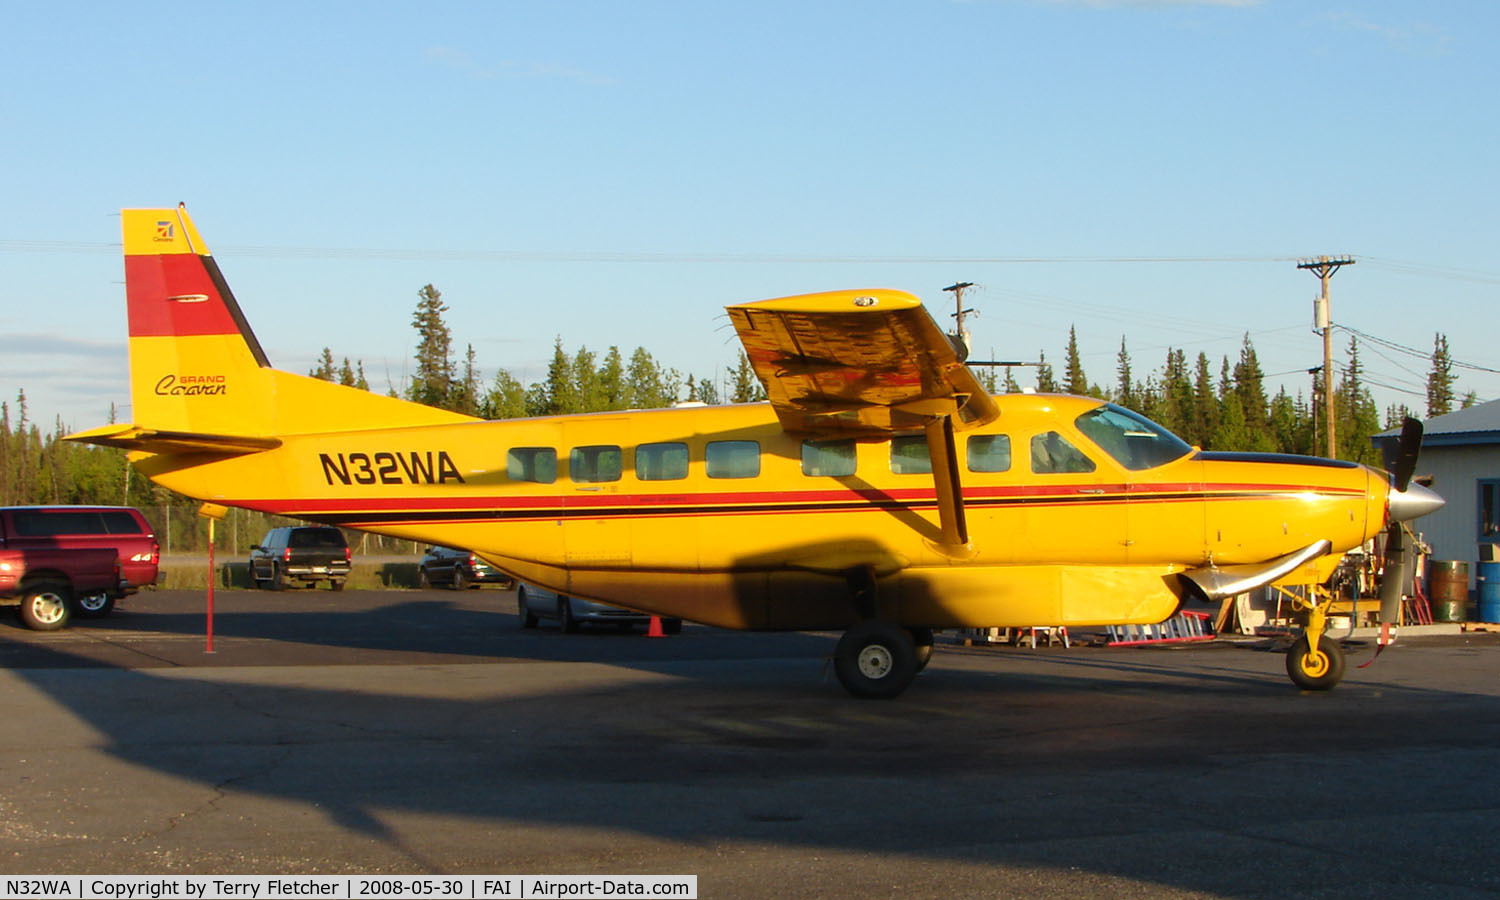 N32WA, 1991 Cessna 208B C/N 208B0234, Wright Air Services Cessna Caravan on Fairbanks East Ramp